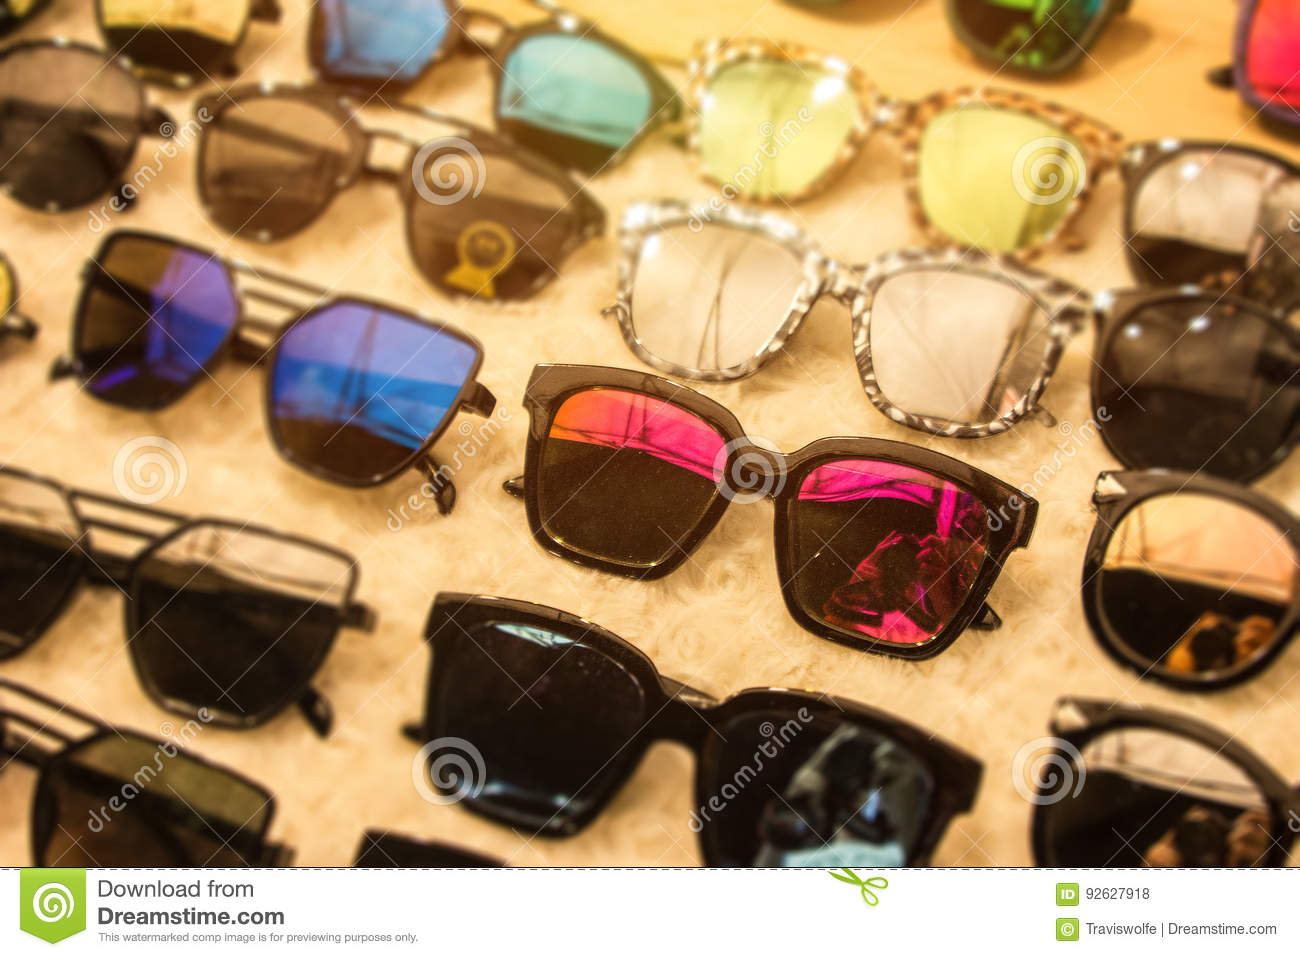 Sunglasses and lenses for cheap discounted rates at market shop with apparel 50 percent off on huge savings for stylish lenses of